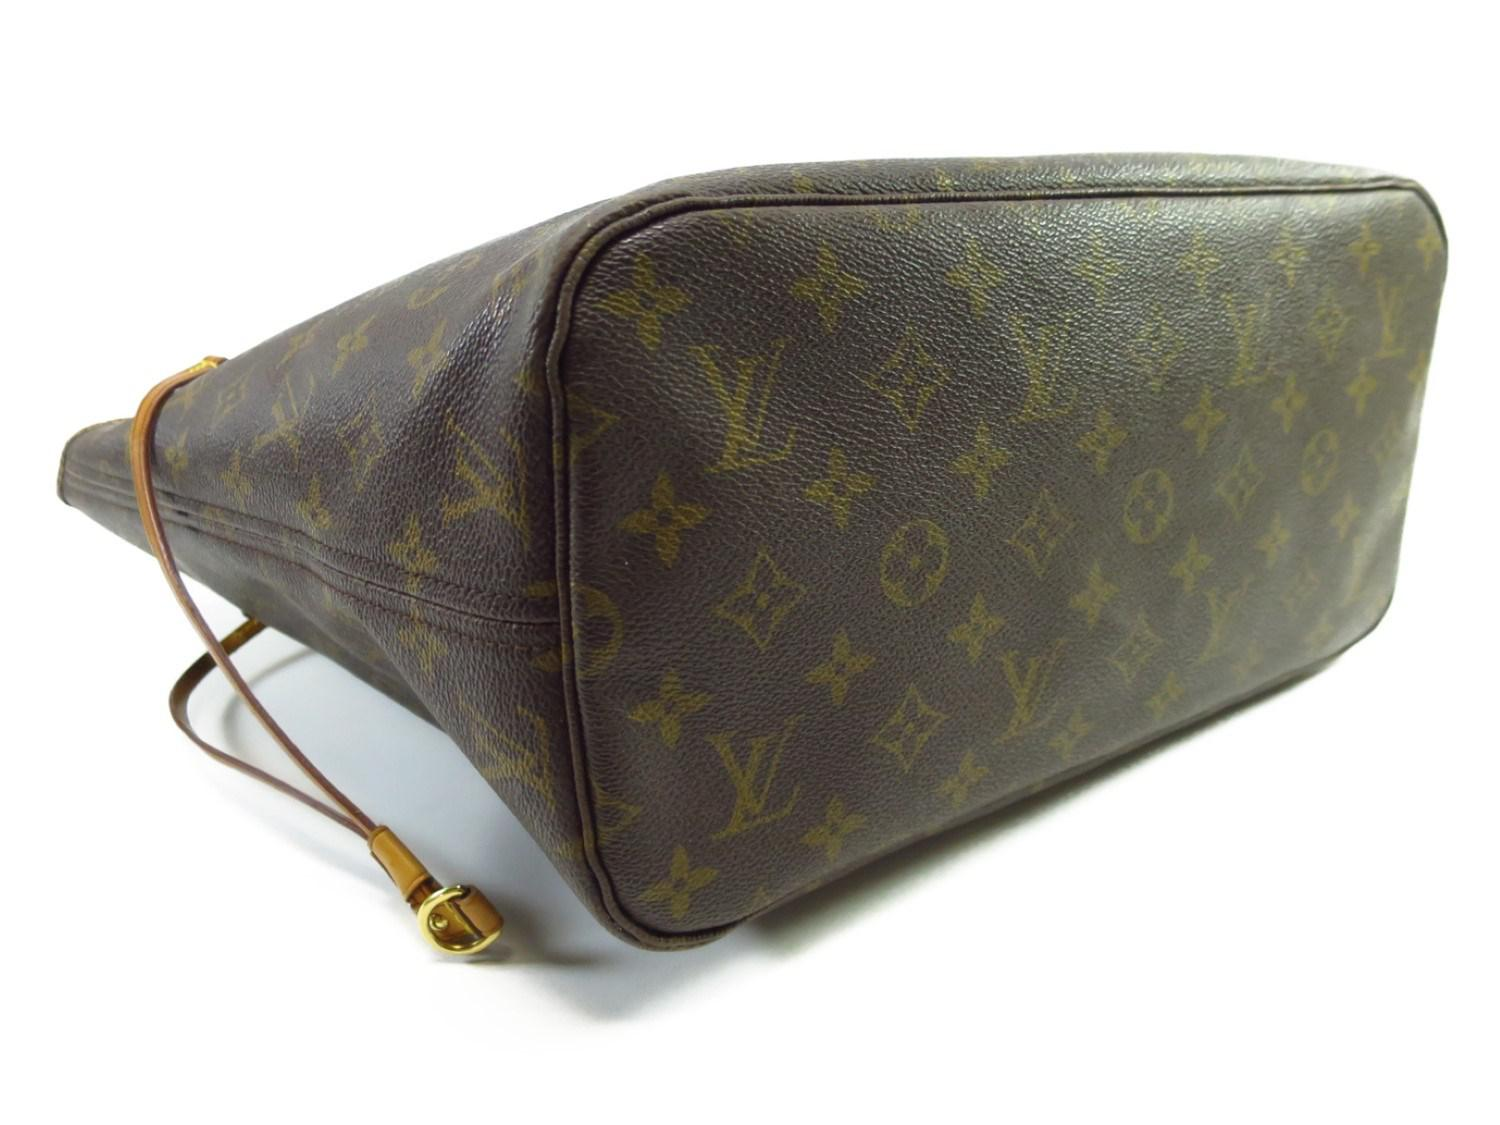 5aa2979fcd7d Lyst - Louis Vuitton Authentic Neverfull Mm Shoulder Tote Bag ...